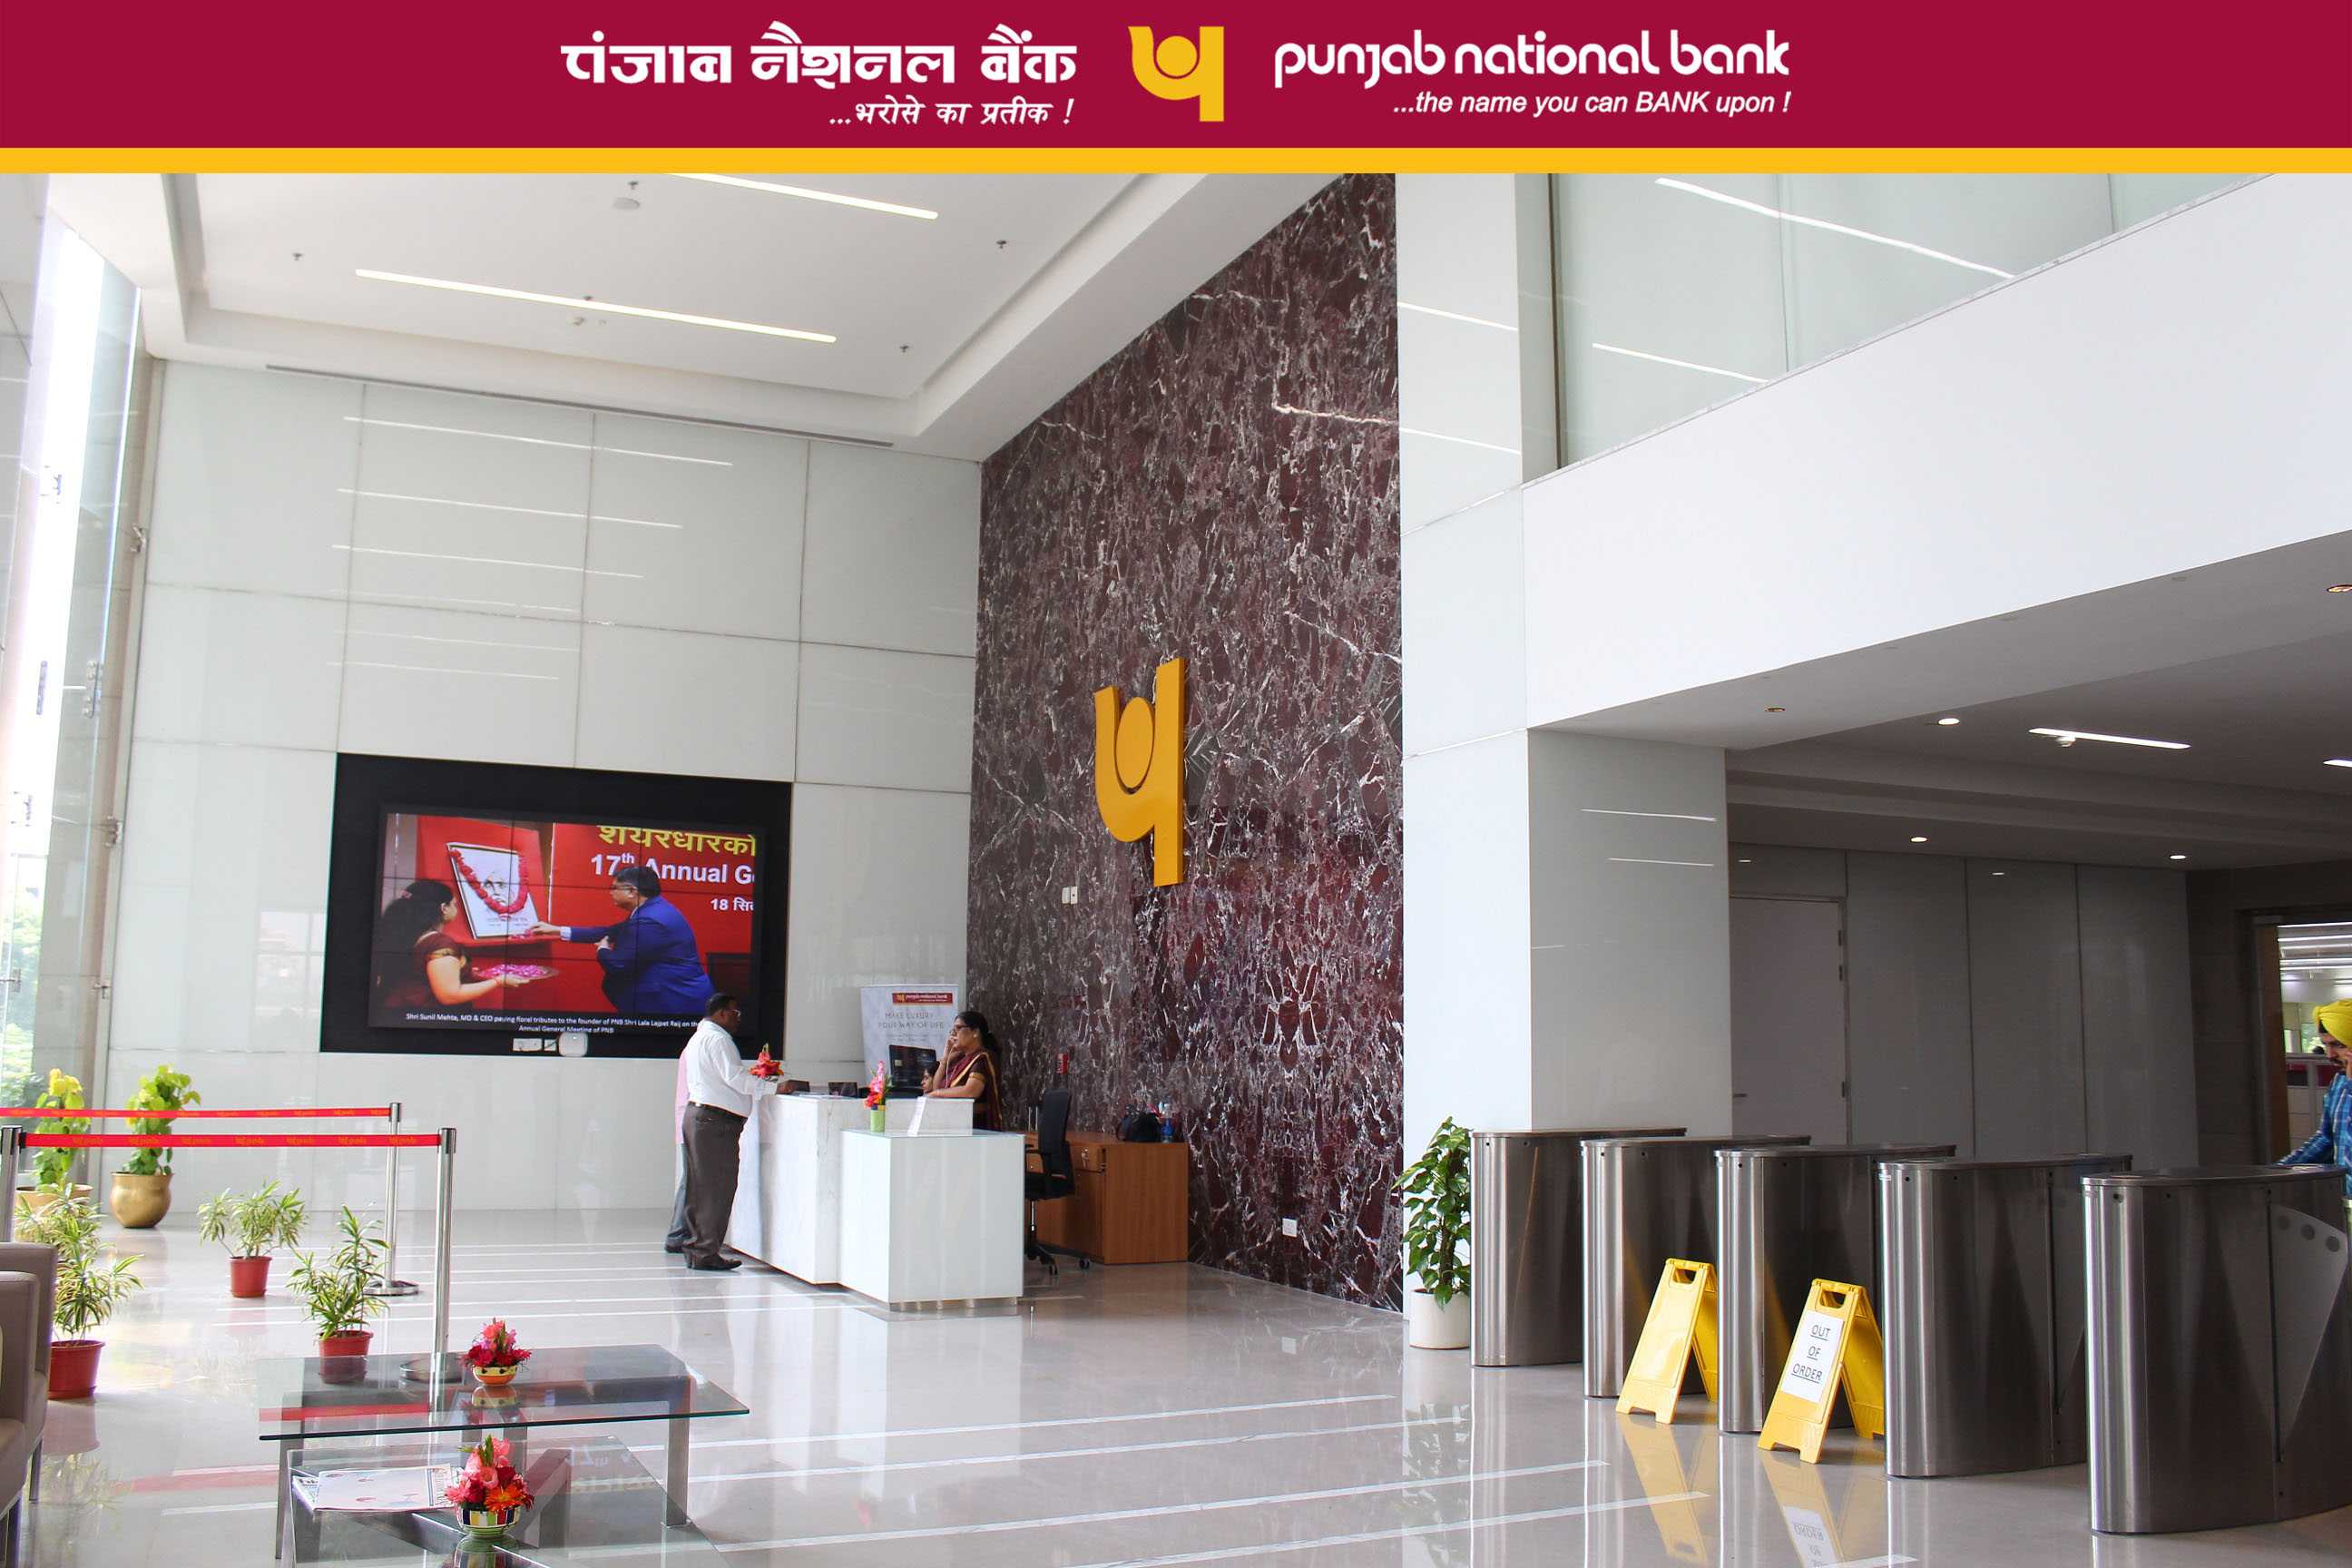 PNB Head Office